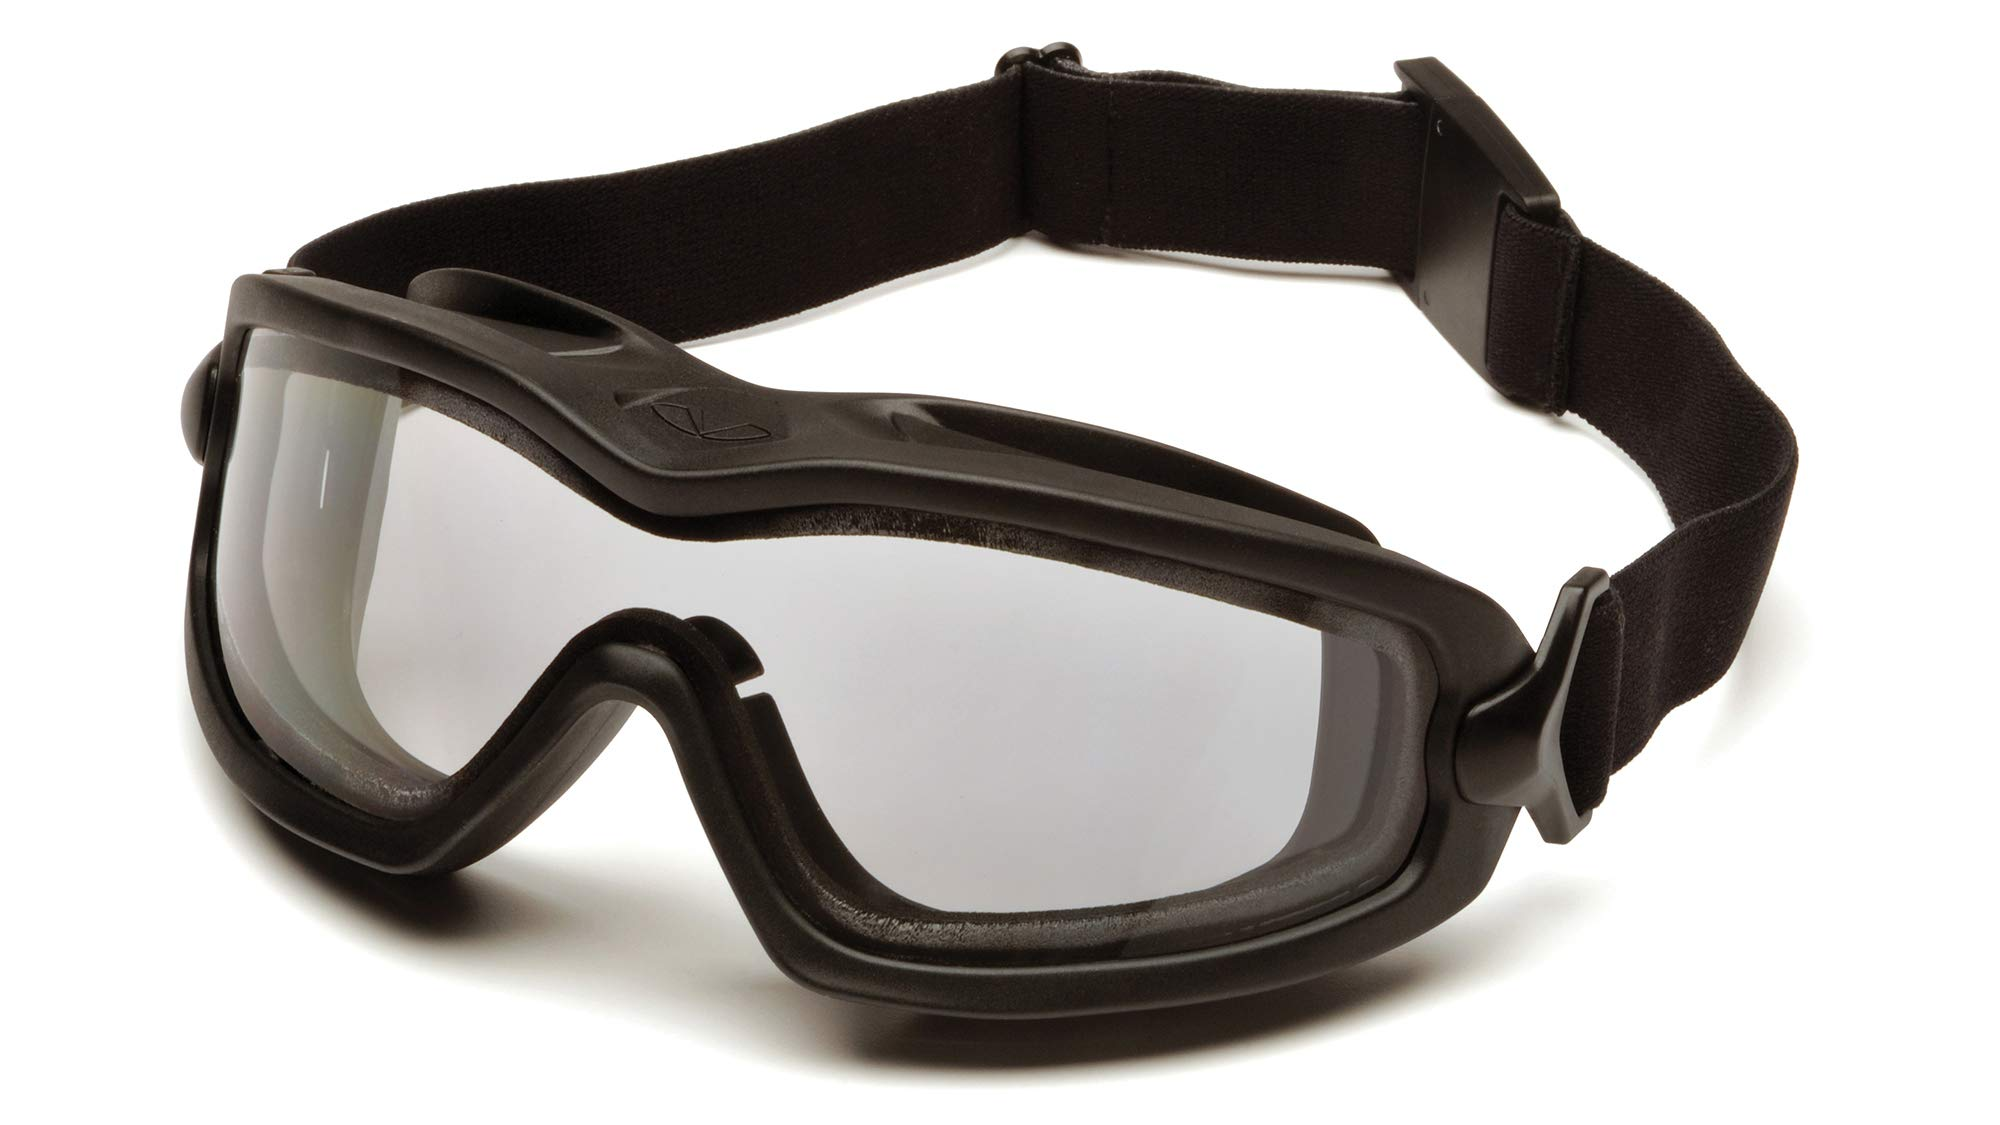 Pyramex GB6410SDT V2G-Plus Goggle with Anti-Fog Lens, Black, (Pack of 12) by Pyramex Safety (Image #1)